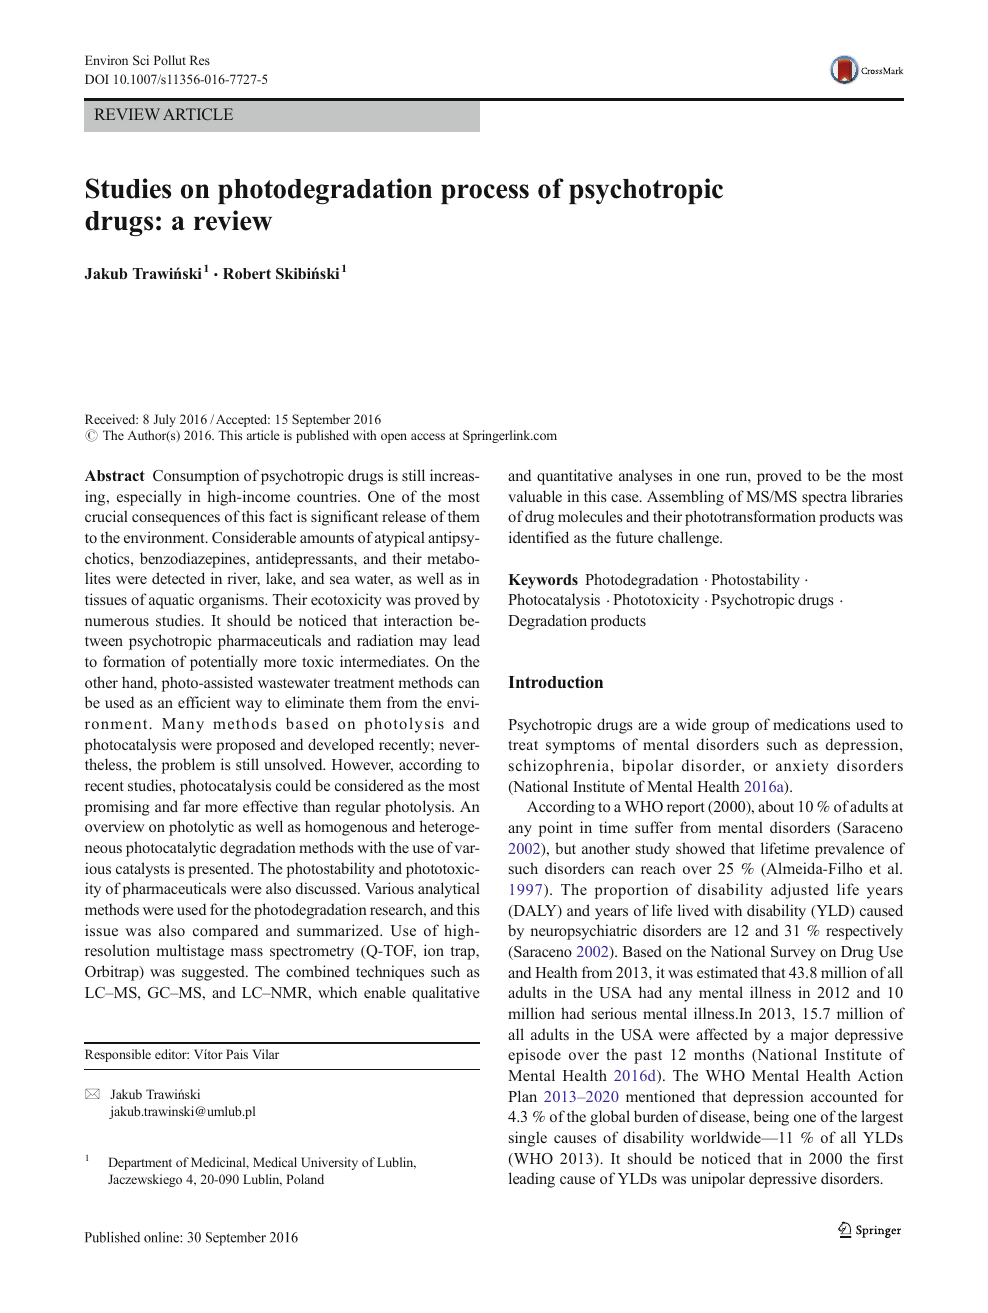 Studies on photodegradation process of psychotropic drugs: a review